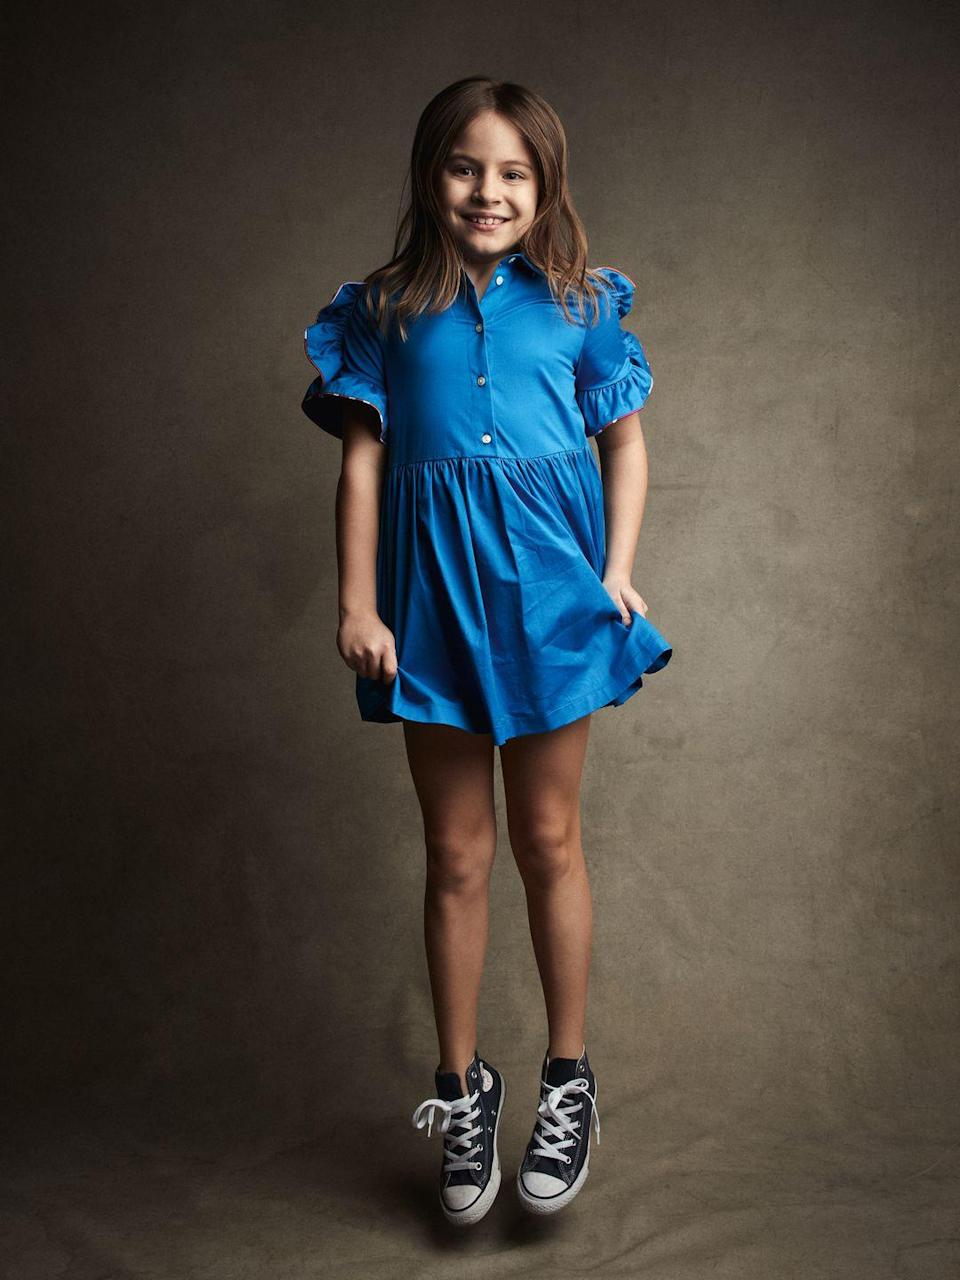 <p>Victoria. Abito con volant sulle maniche, <strong>Emilio Pucci Junior</strong> (354 euro), sneakers <em>Chuck Taylor All Star </em><em>Classic</em> di <strong>Converse </strong>(50 euro).</p>